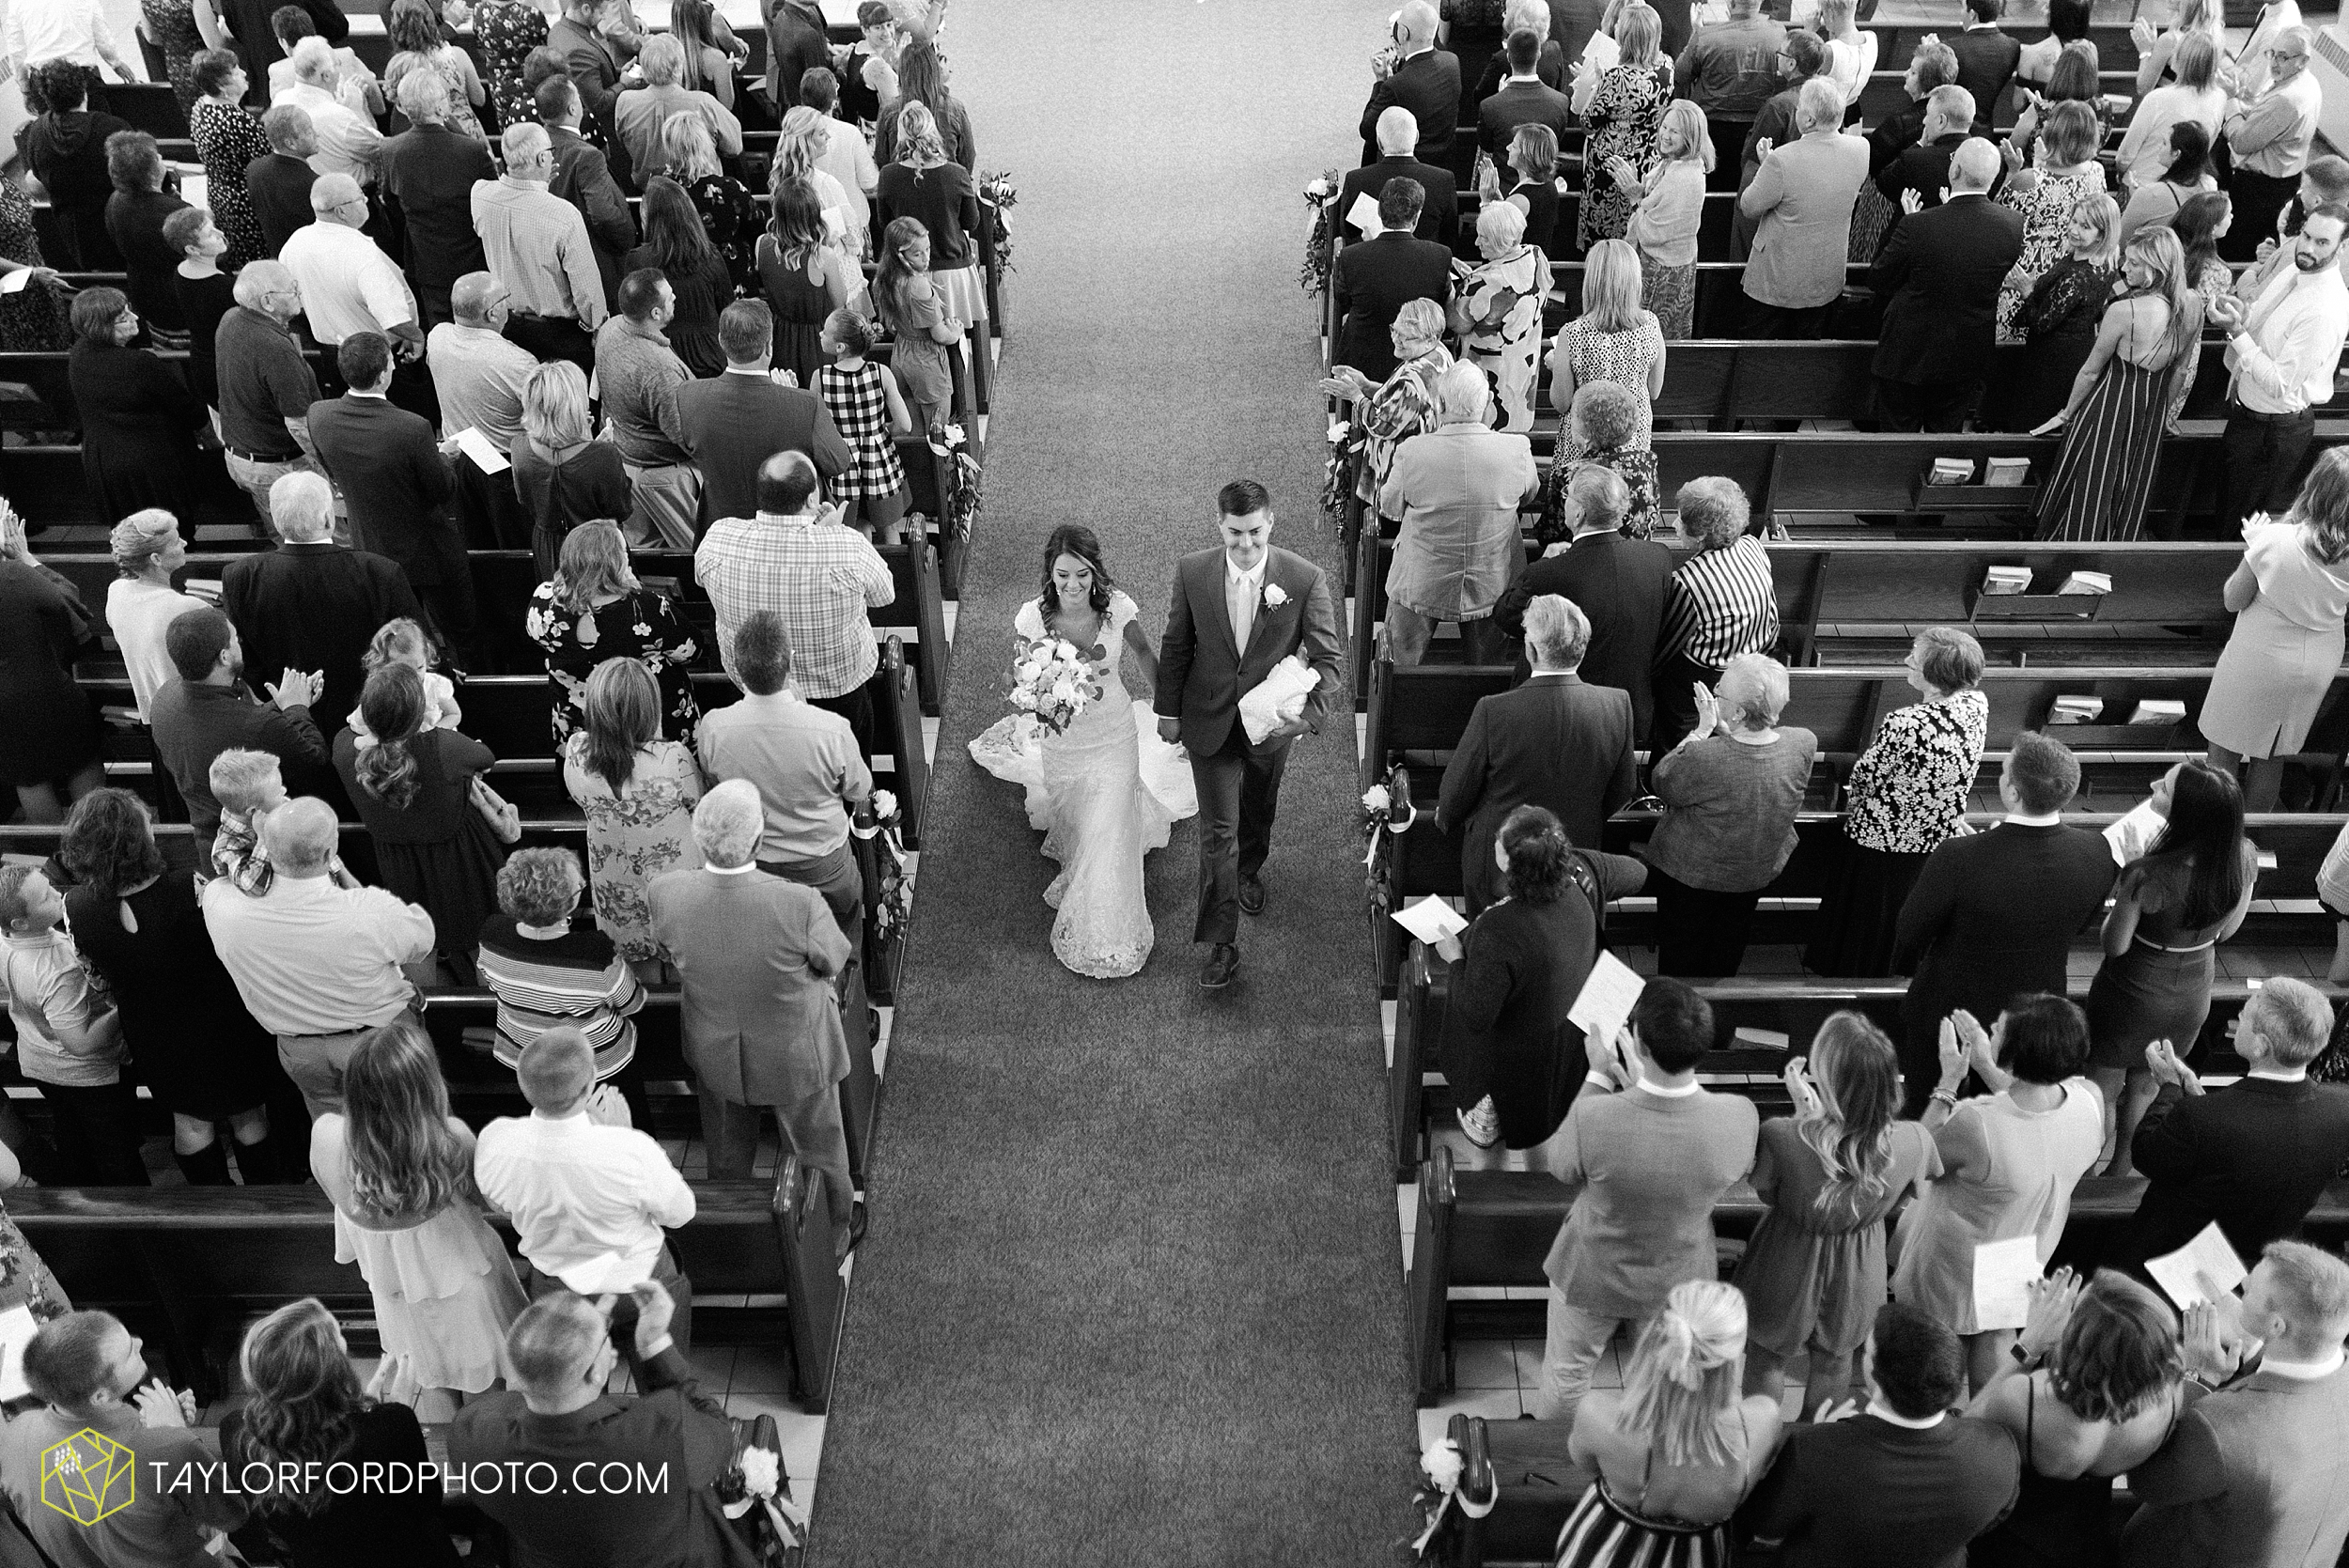 kacee-haden-sholl-second-story-saint-marys-knights-of-columbus-defiance-ohio-wedding-photographer-taylor-ford-photography_0157.jpg